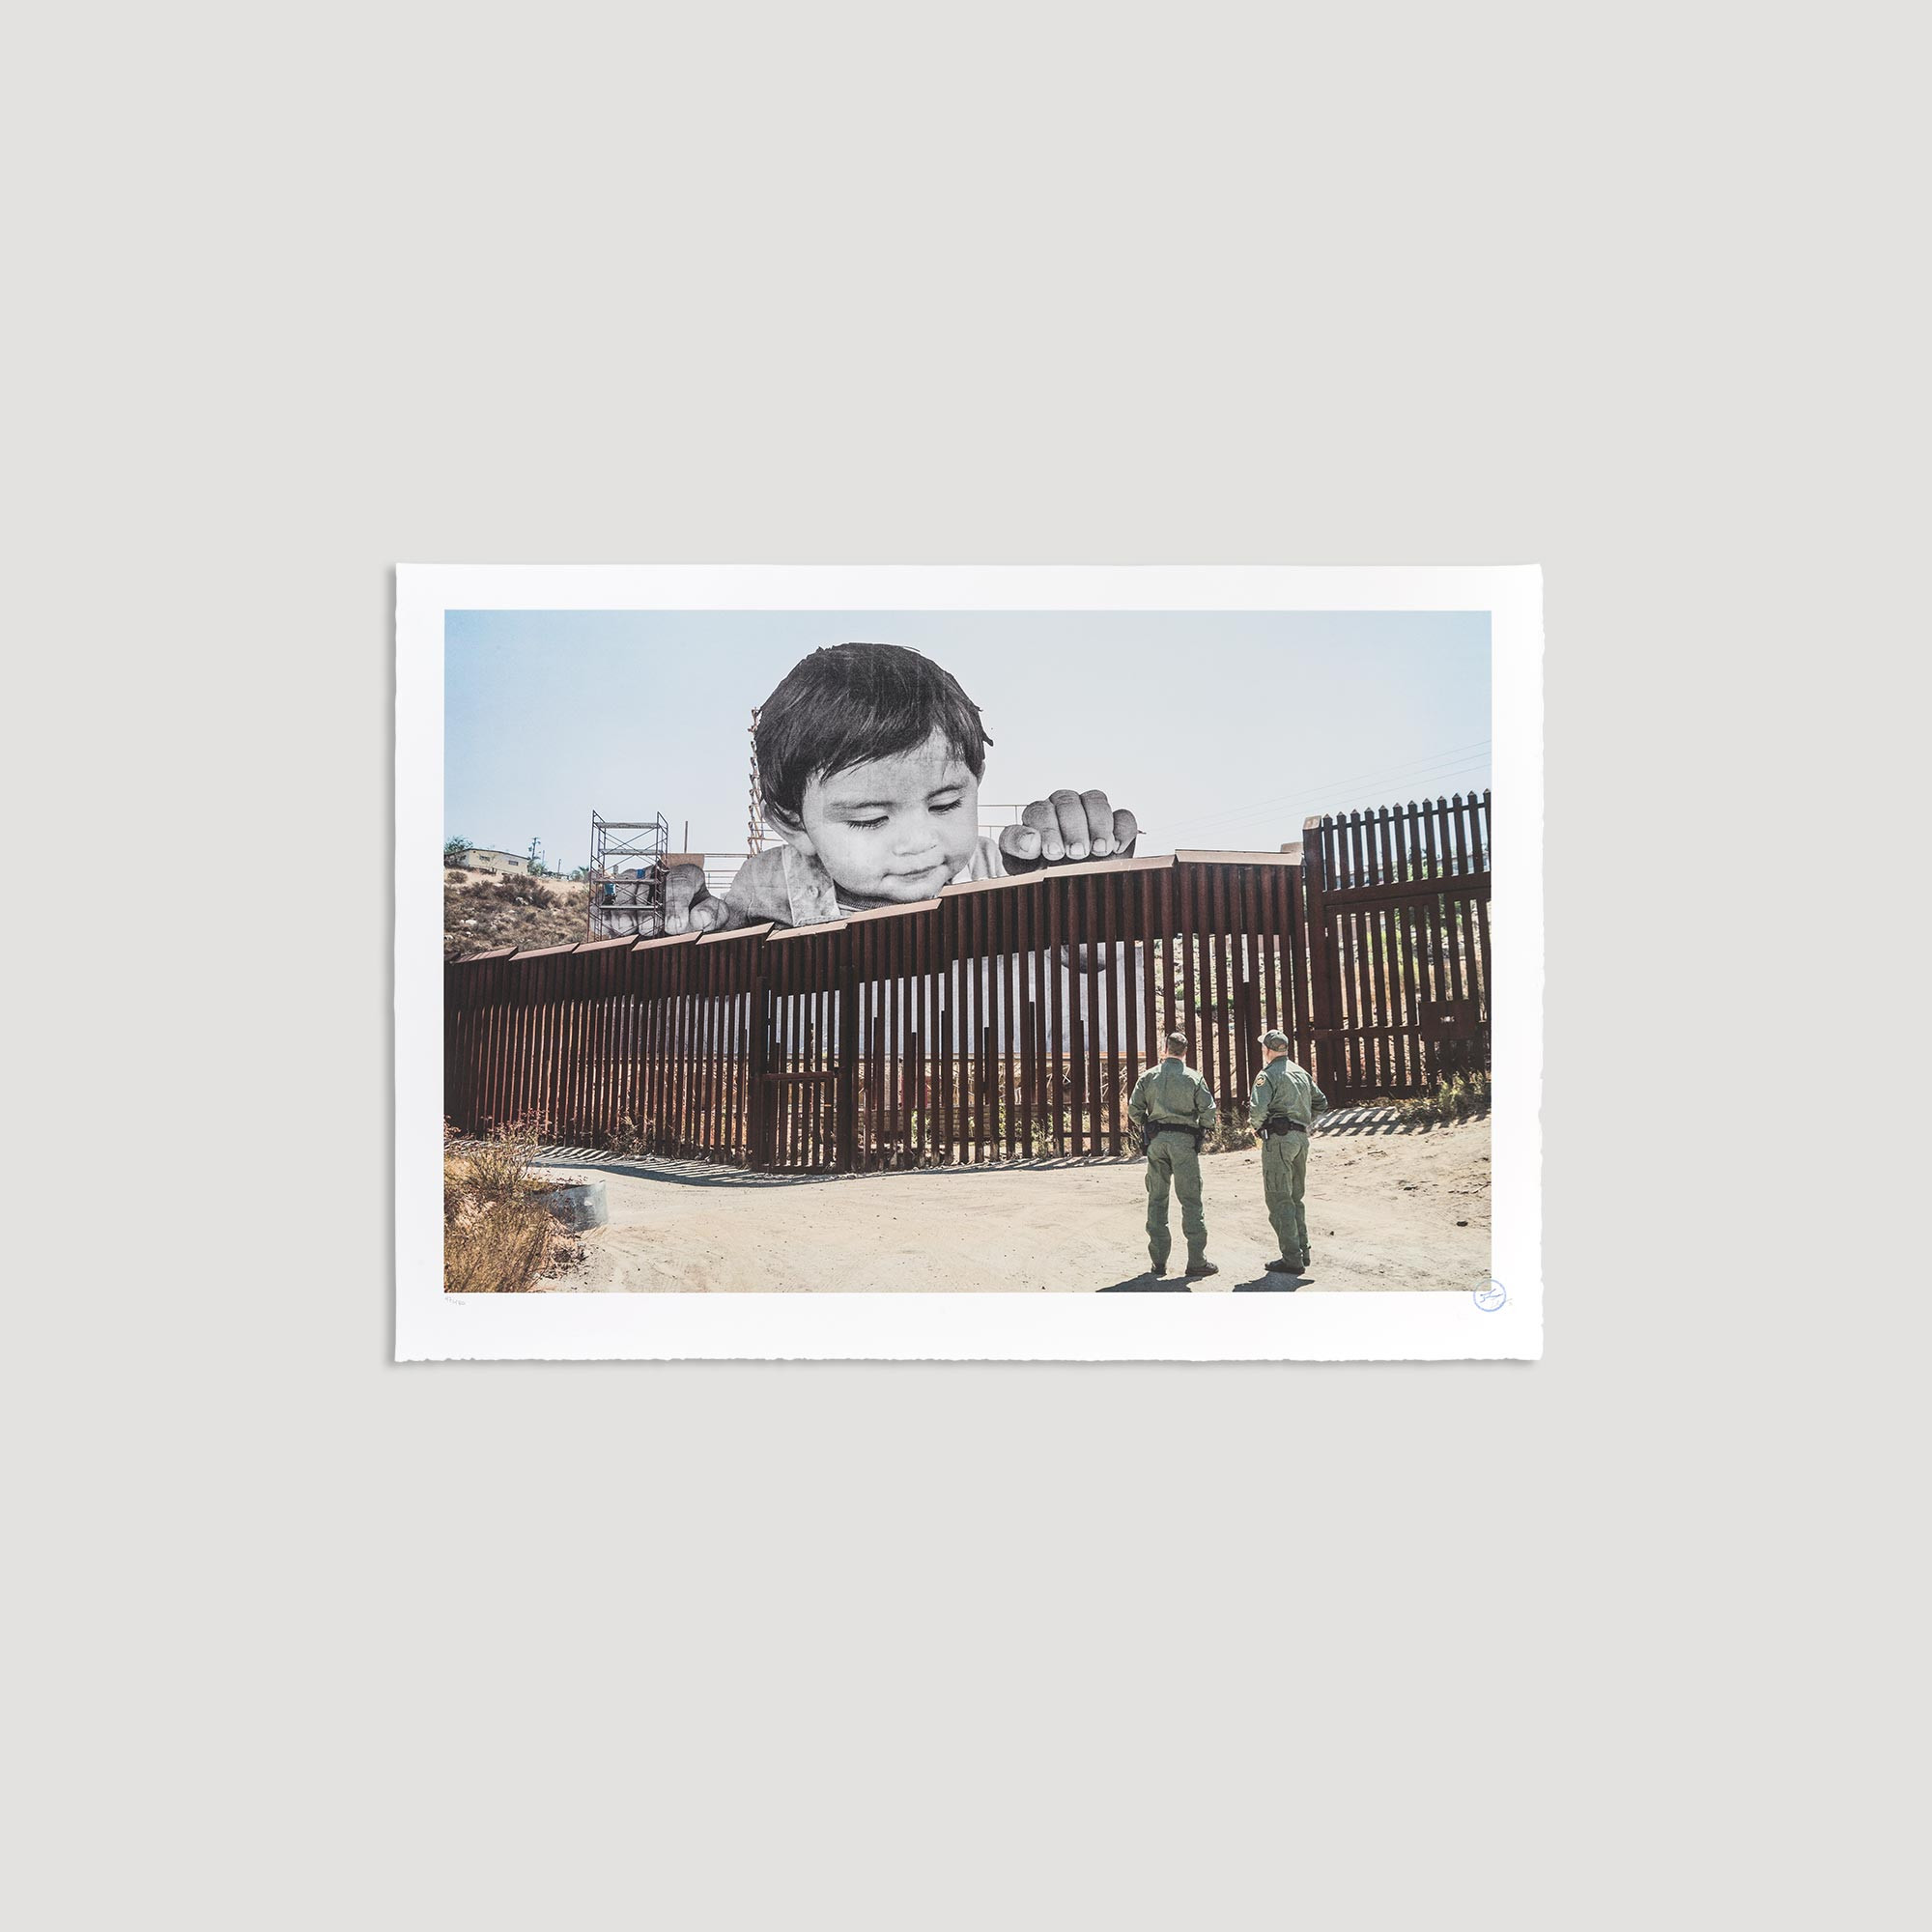 IGIANTS, Kikito and the Border Patrol, Tecate, Mexico - U.S.A., 2017